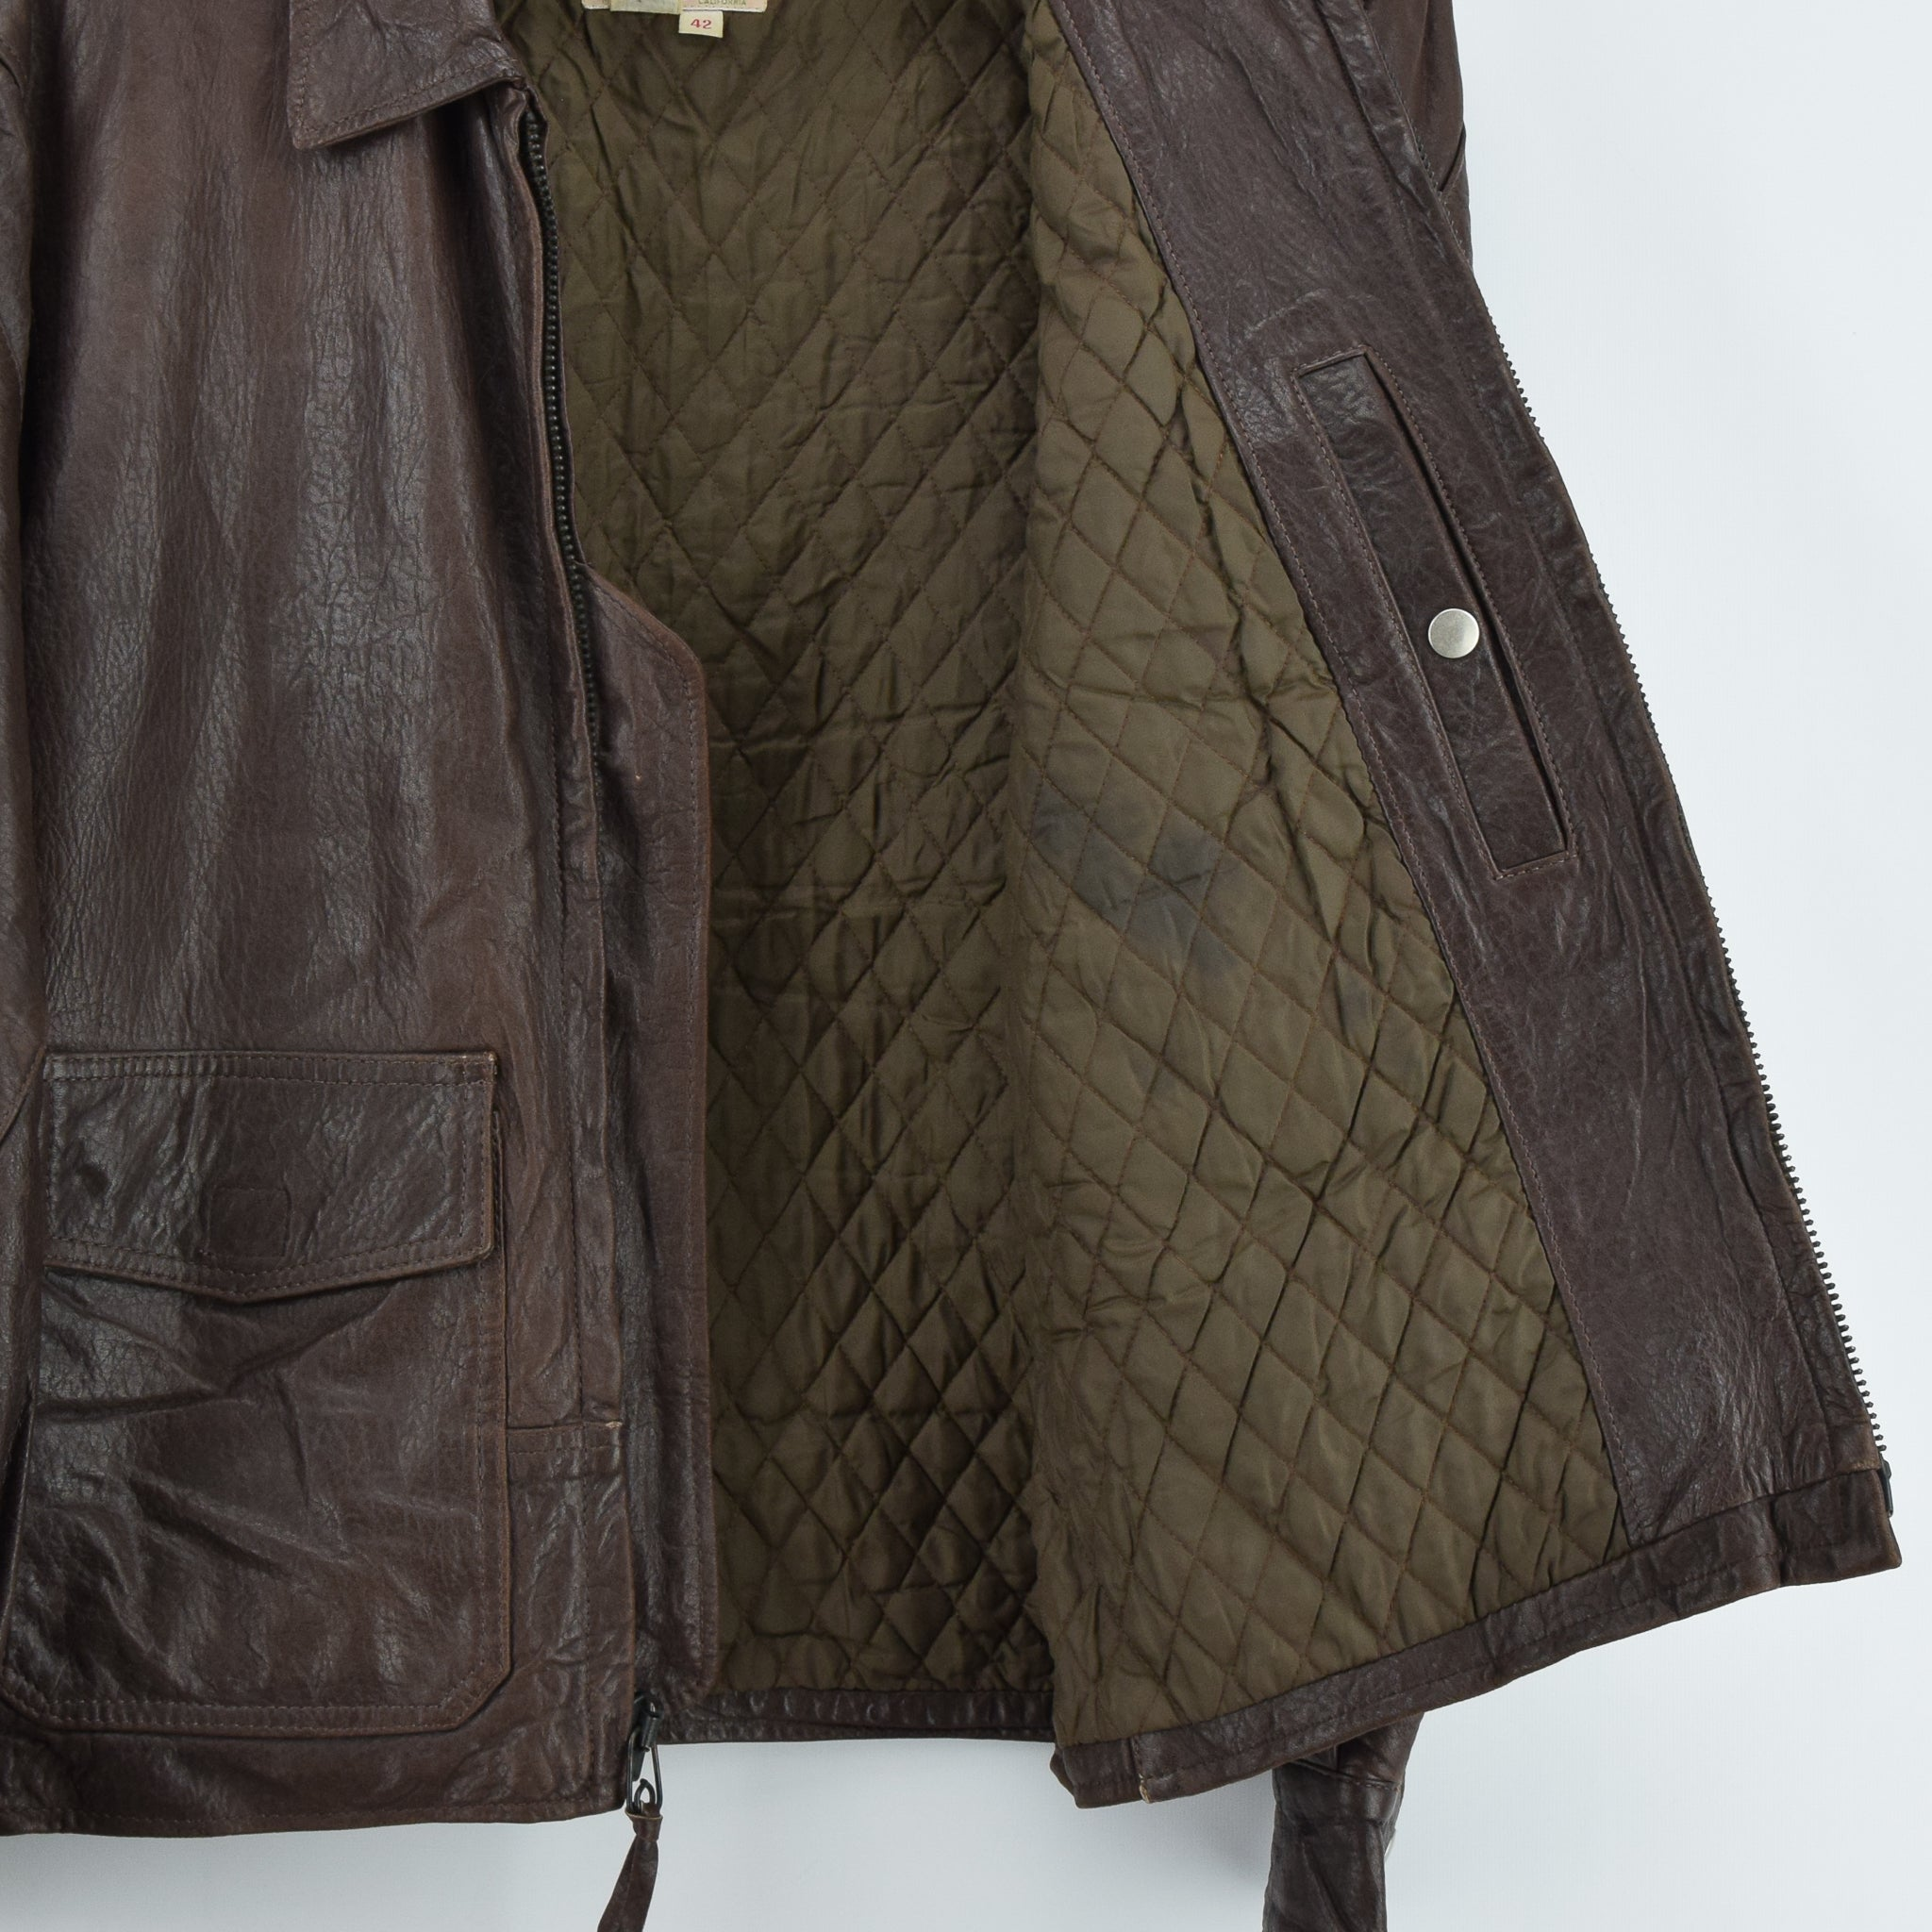 Vintage Banana Republic Brown Leather Bomber Biker Style Jacket Made in USA L internal pocket